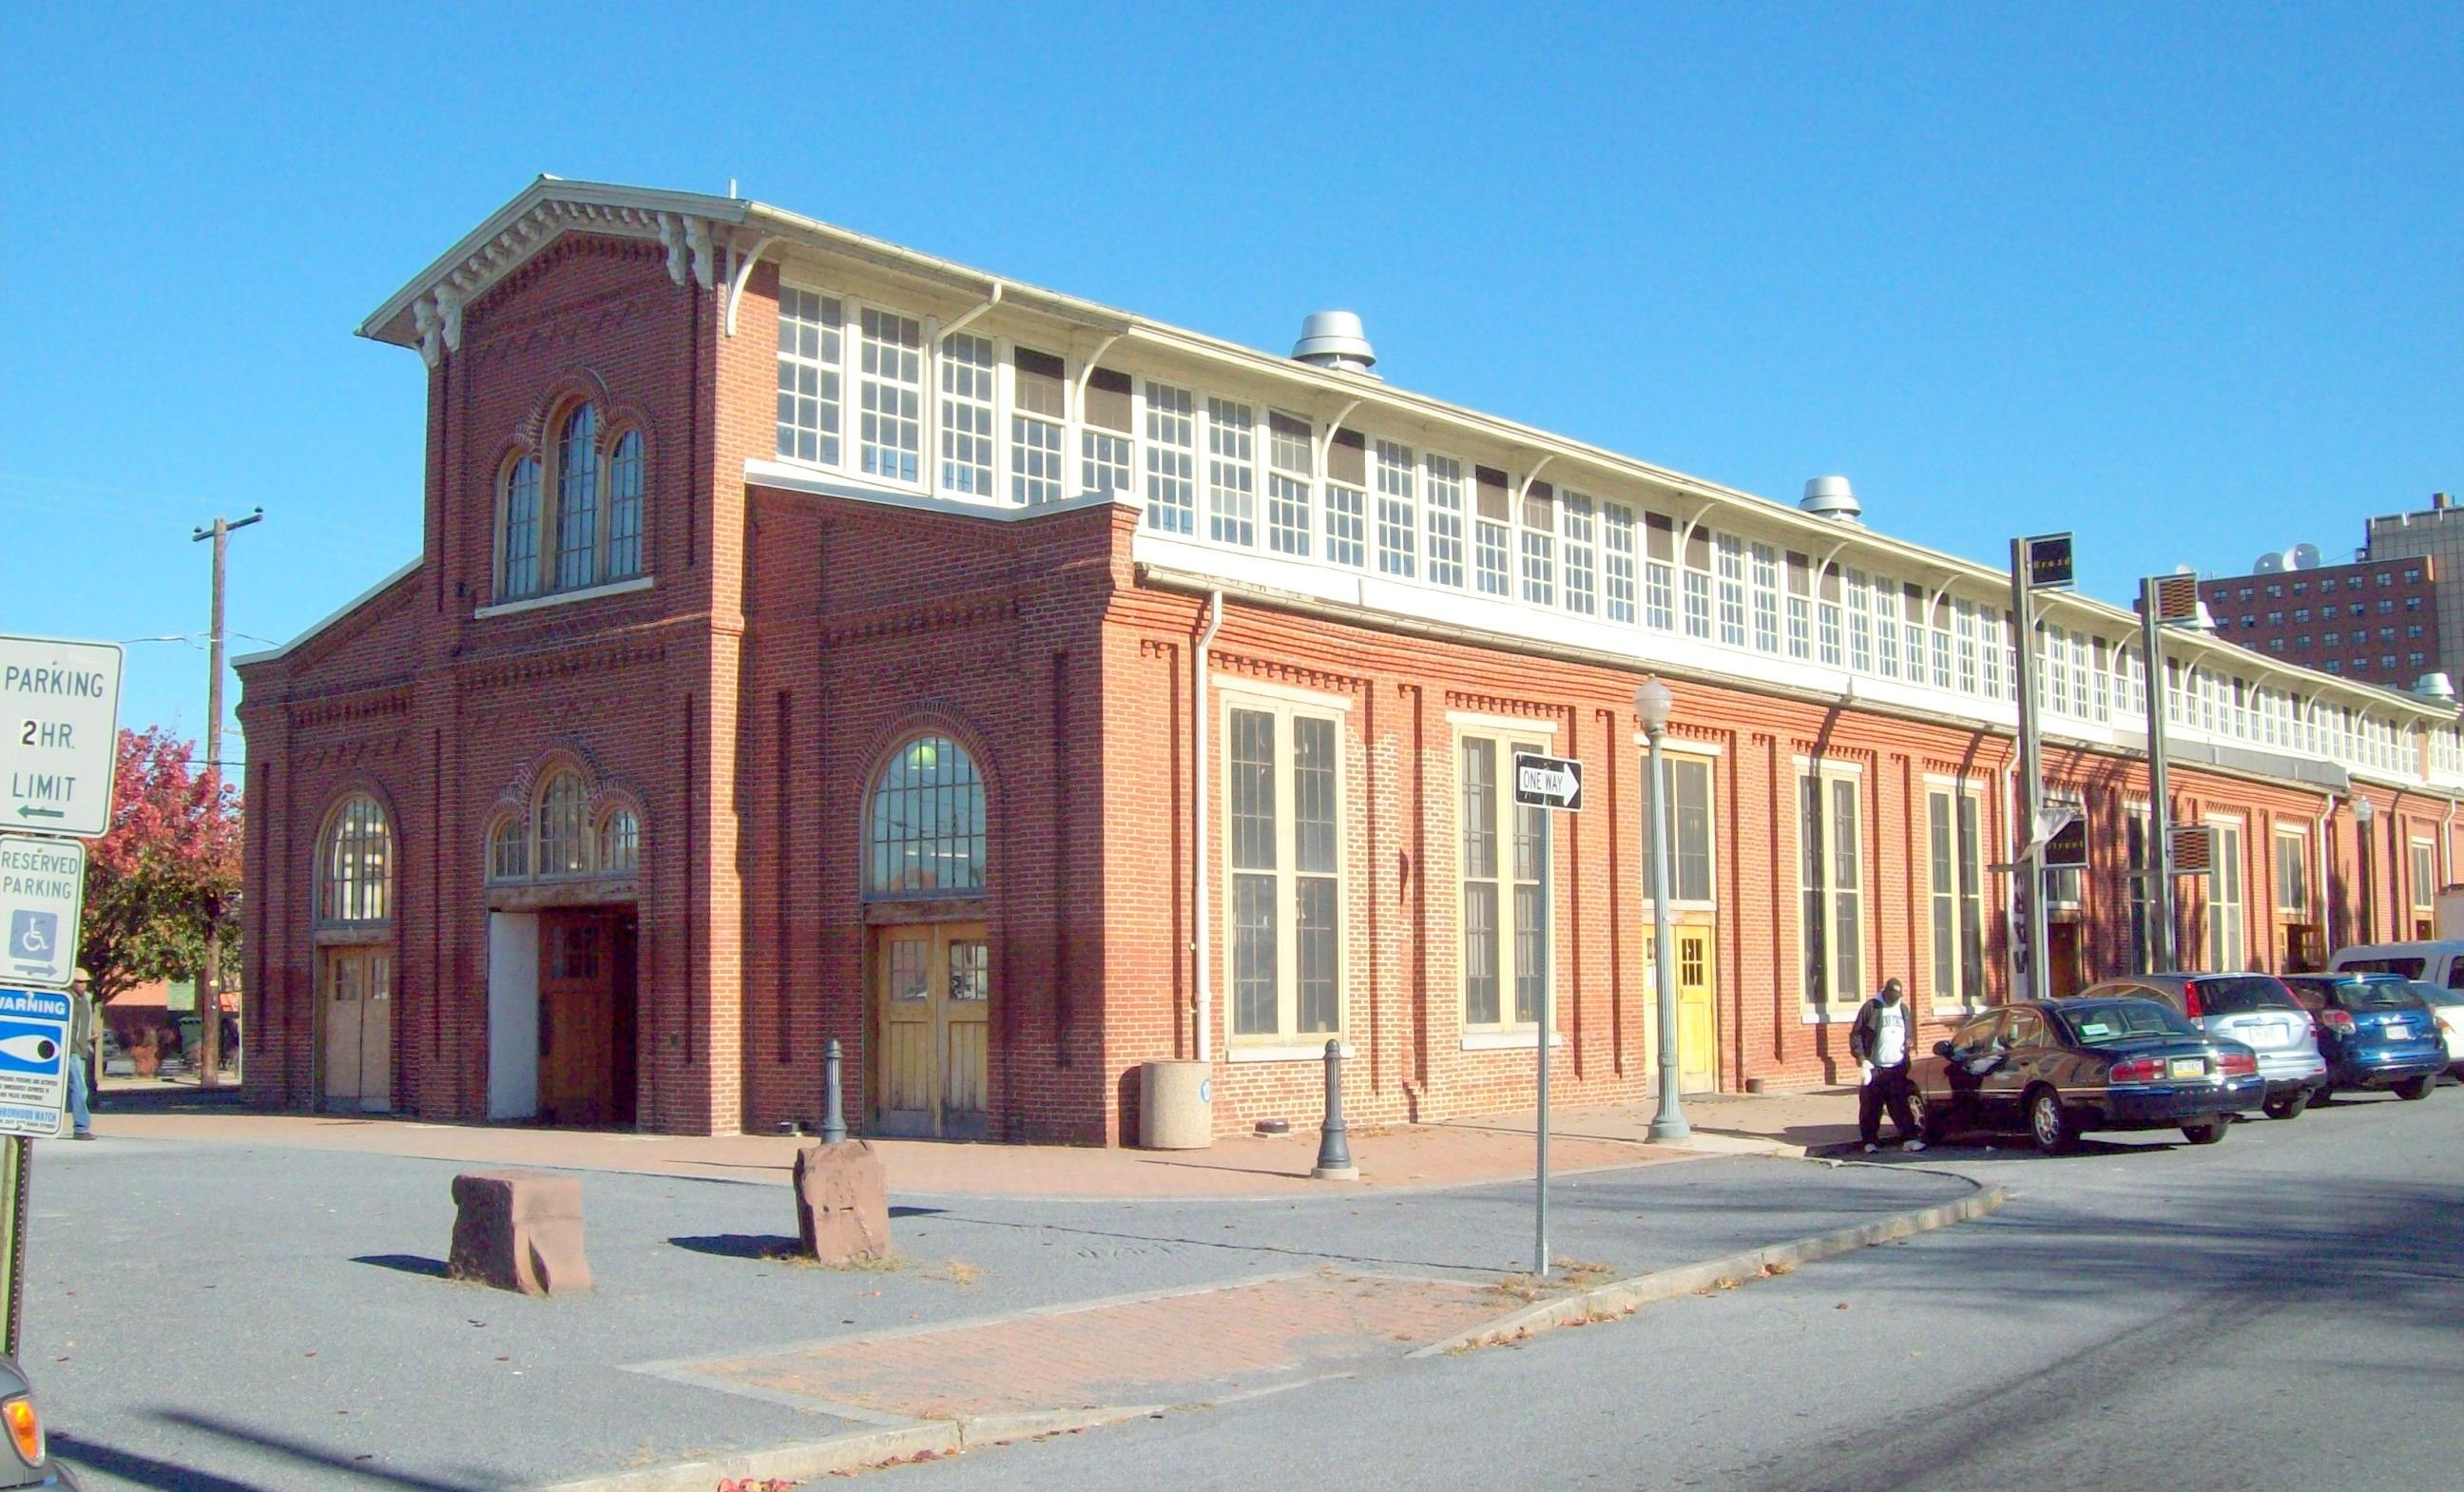 And the market's 1878 Brick Market House were connected by a wooden market building for decades.